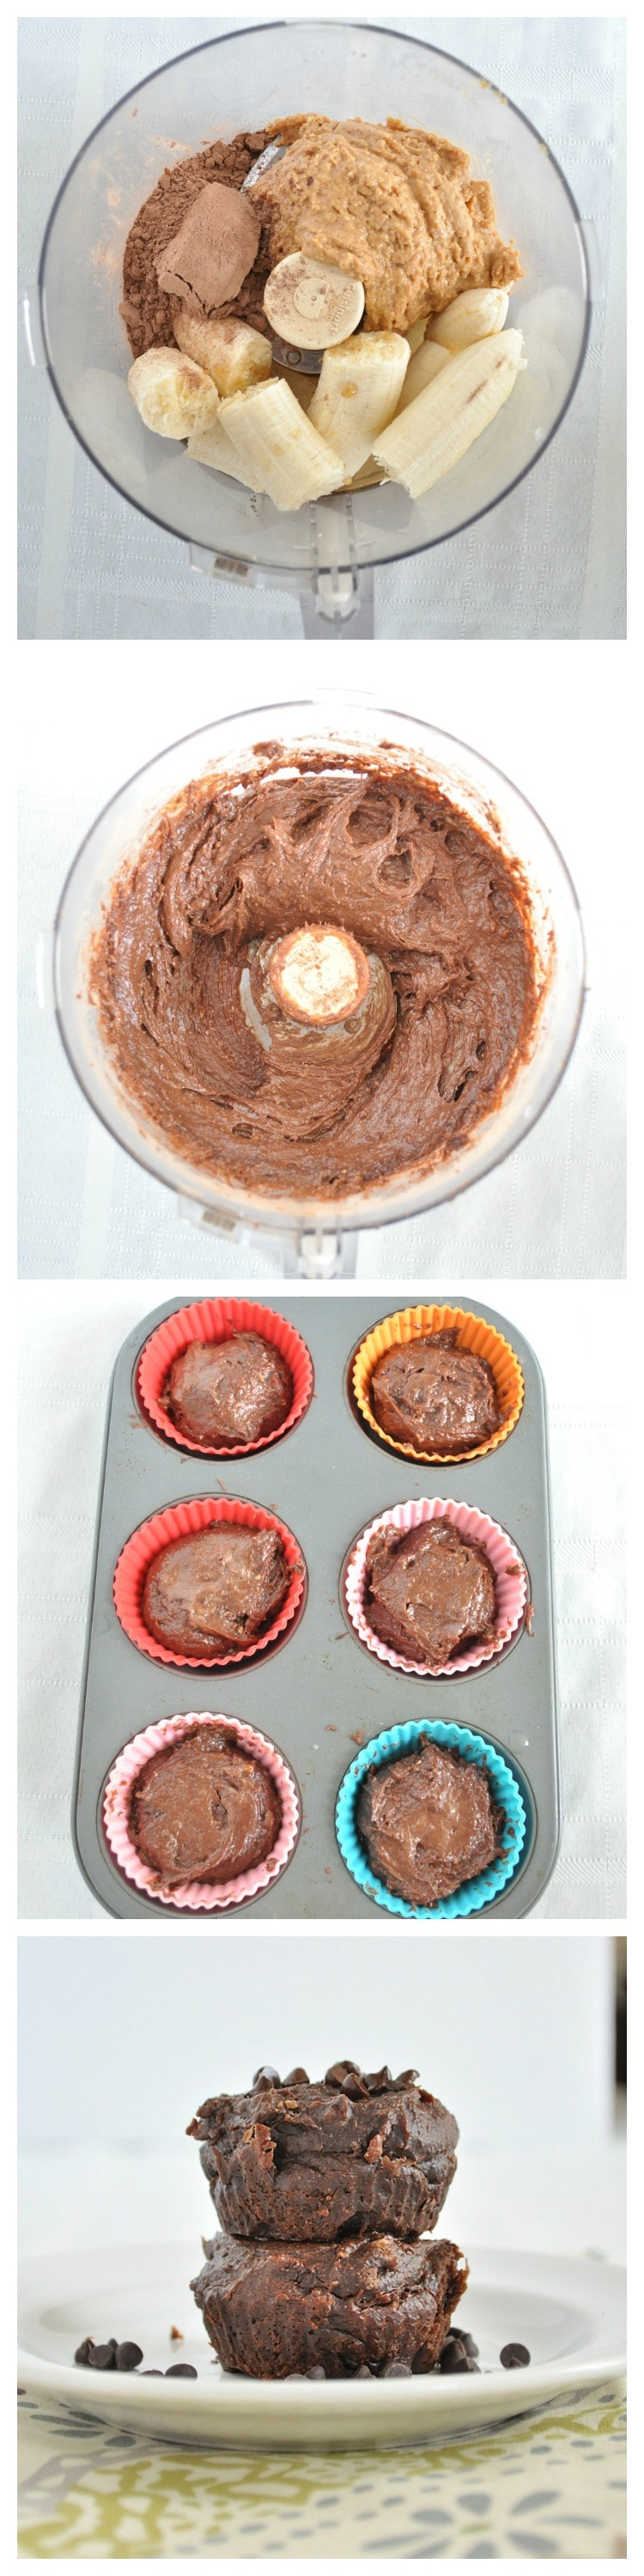 Flourless Chocolate Muffin Kroki